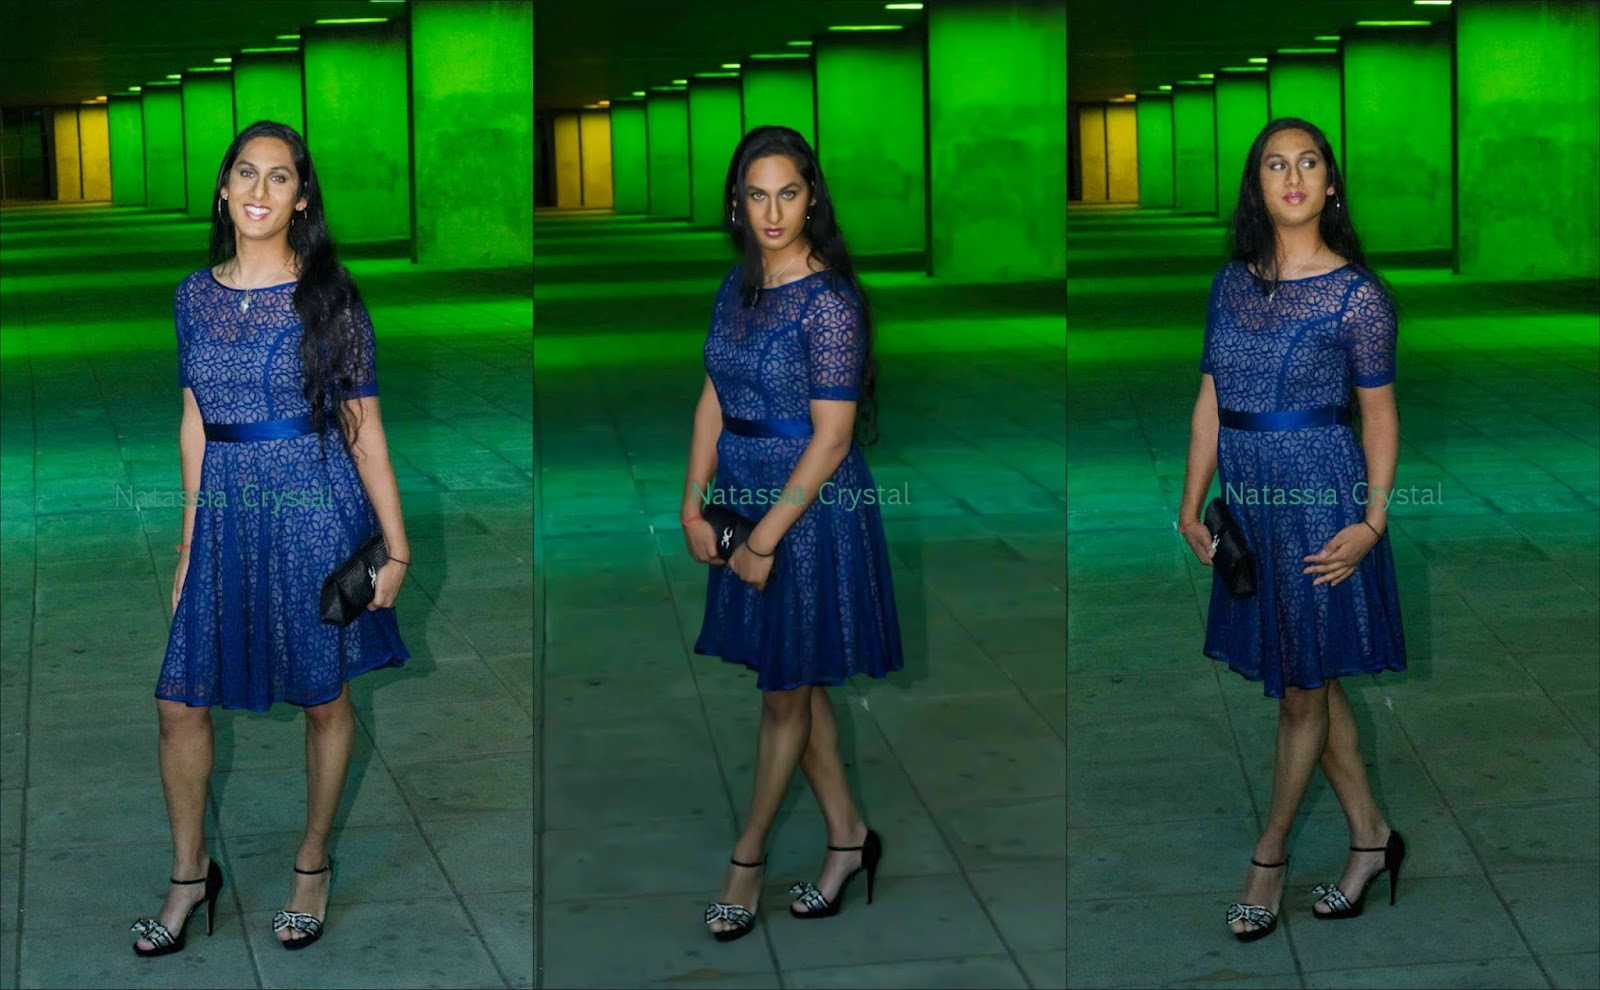 Natassia Crystal natcrys, blue prom dress, high heeled sandals, outside at night, architecture institute